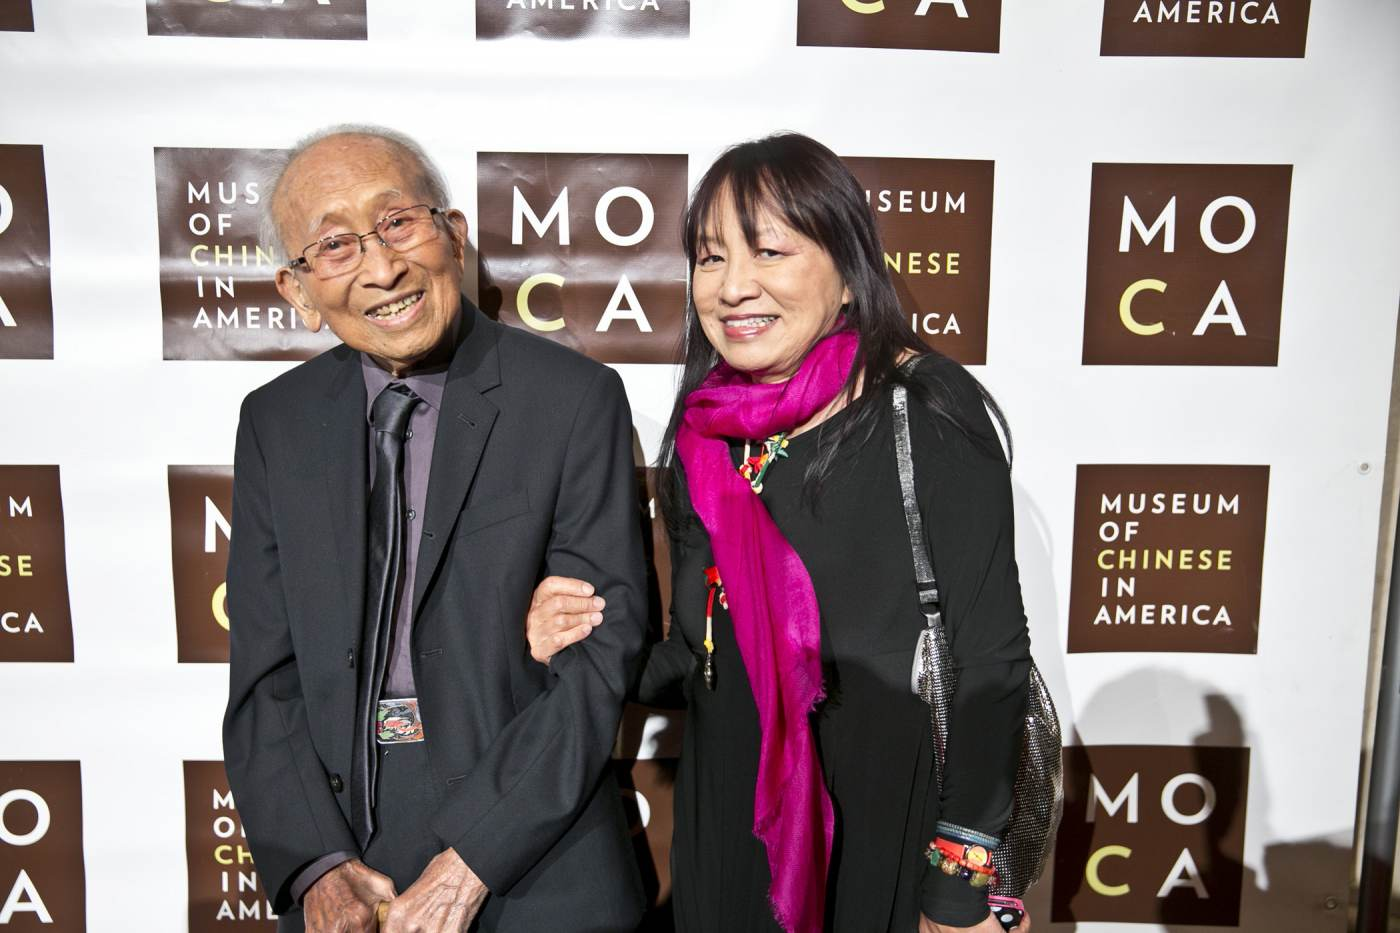 23 September 2019 Posted. Tyrus Wong (Left) with his daughter Kim (Right) at the 2014 MOCA Gala, Museum of Chinese in America (MOCA) Institutional Archives. 黄齐耀(左)和他的女儿Kim(右)在2014年的MOCA年度传承慈善晚宴上,美国华人博物馆(MOCA)机构档案